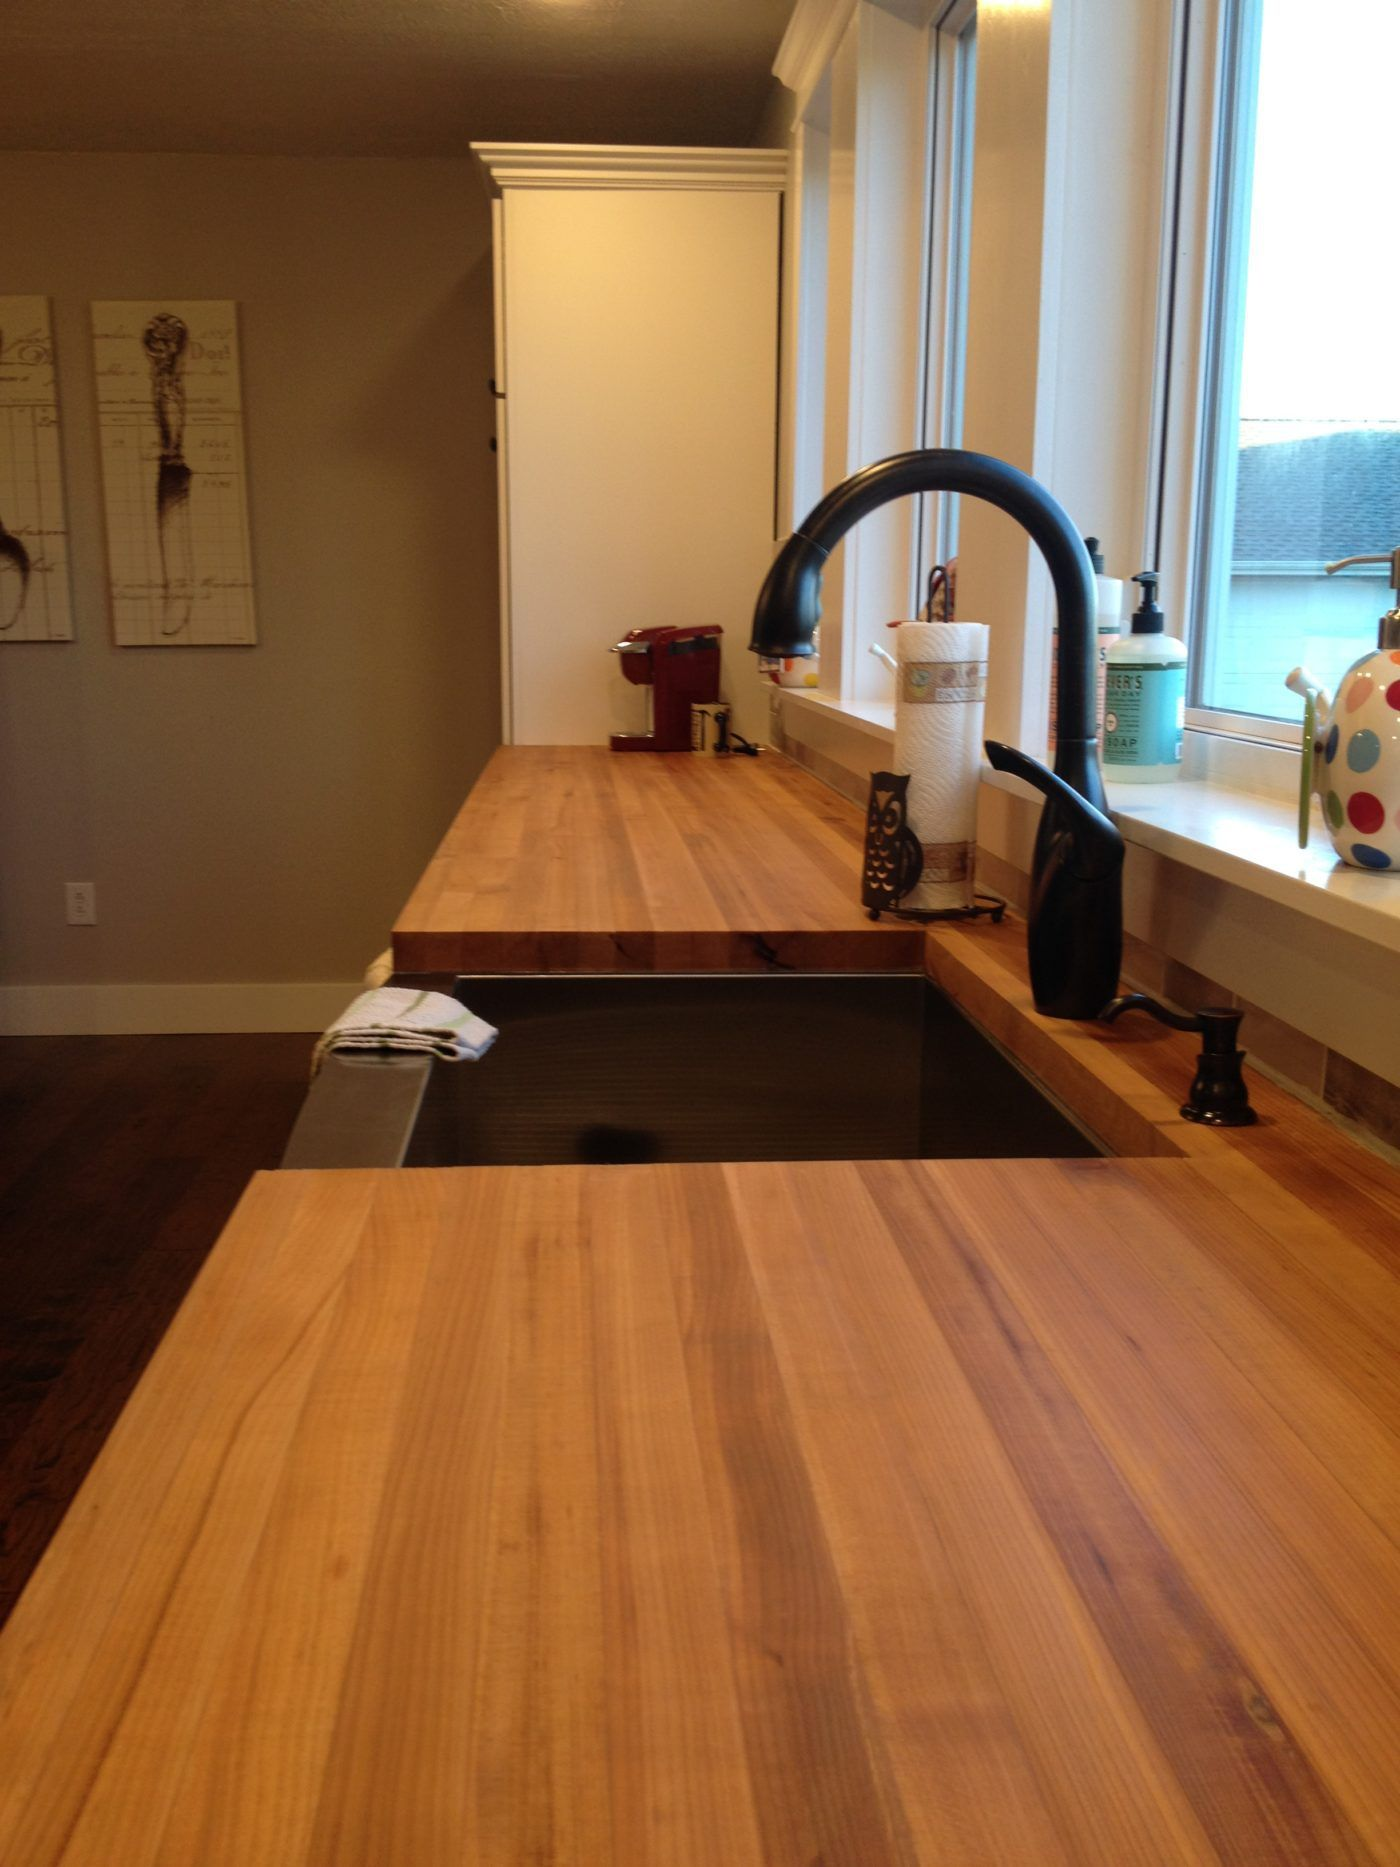 My Take On Butcher Block Countertops Woodn T You Like To Know Replacing Kitchen Countertops Butcher Block Countertops Kitchen Diy Butcher Block Countertops